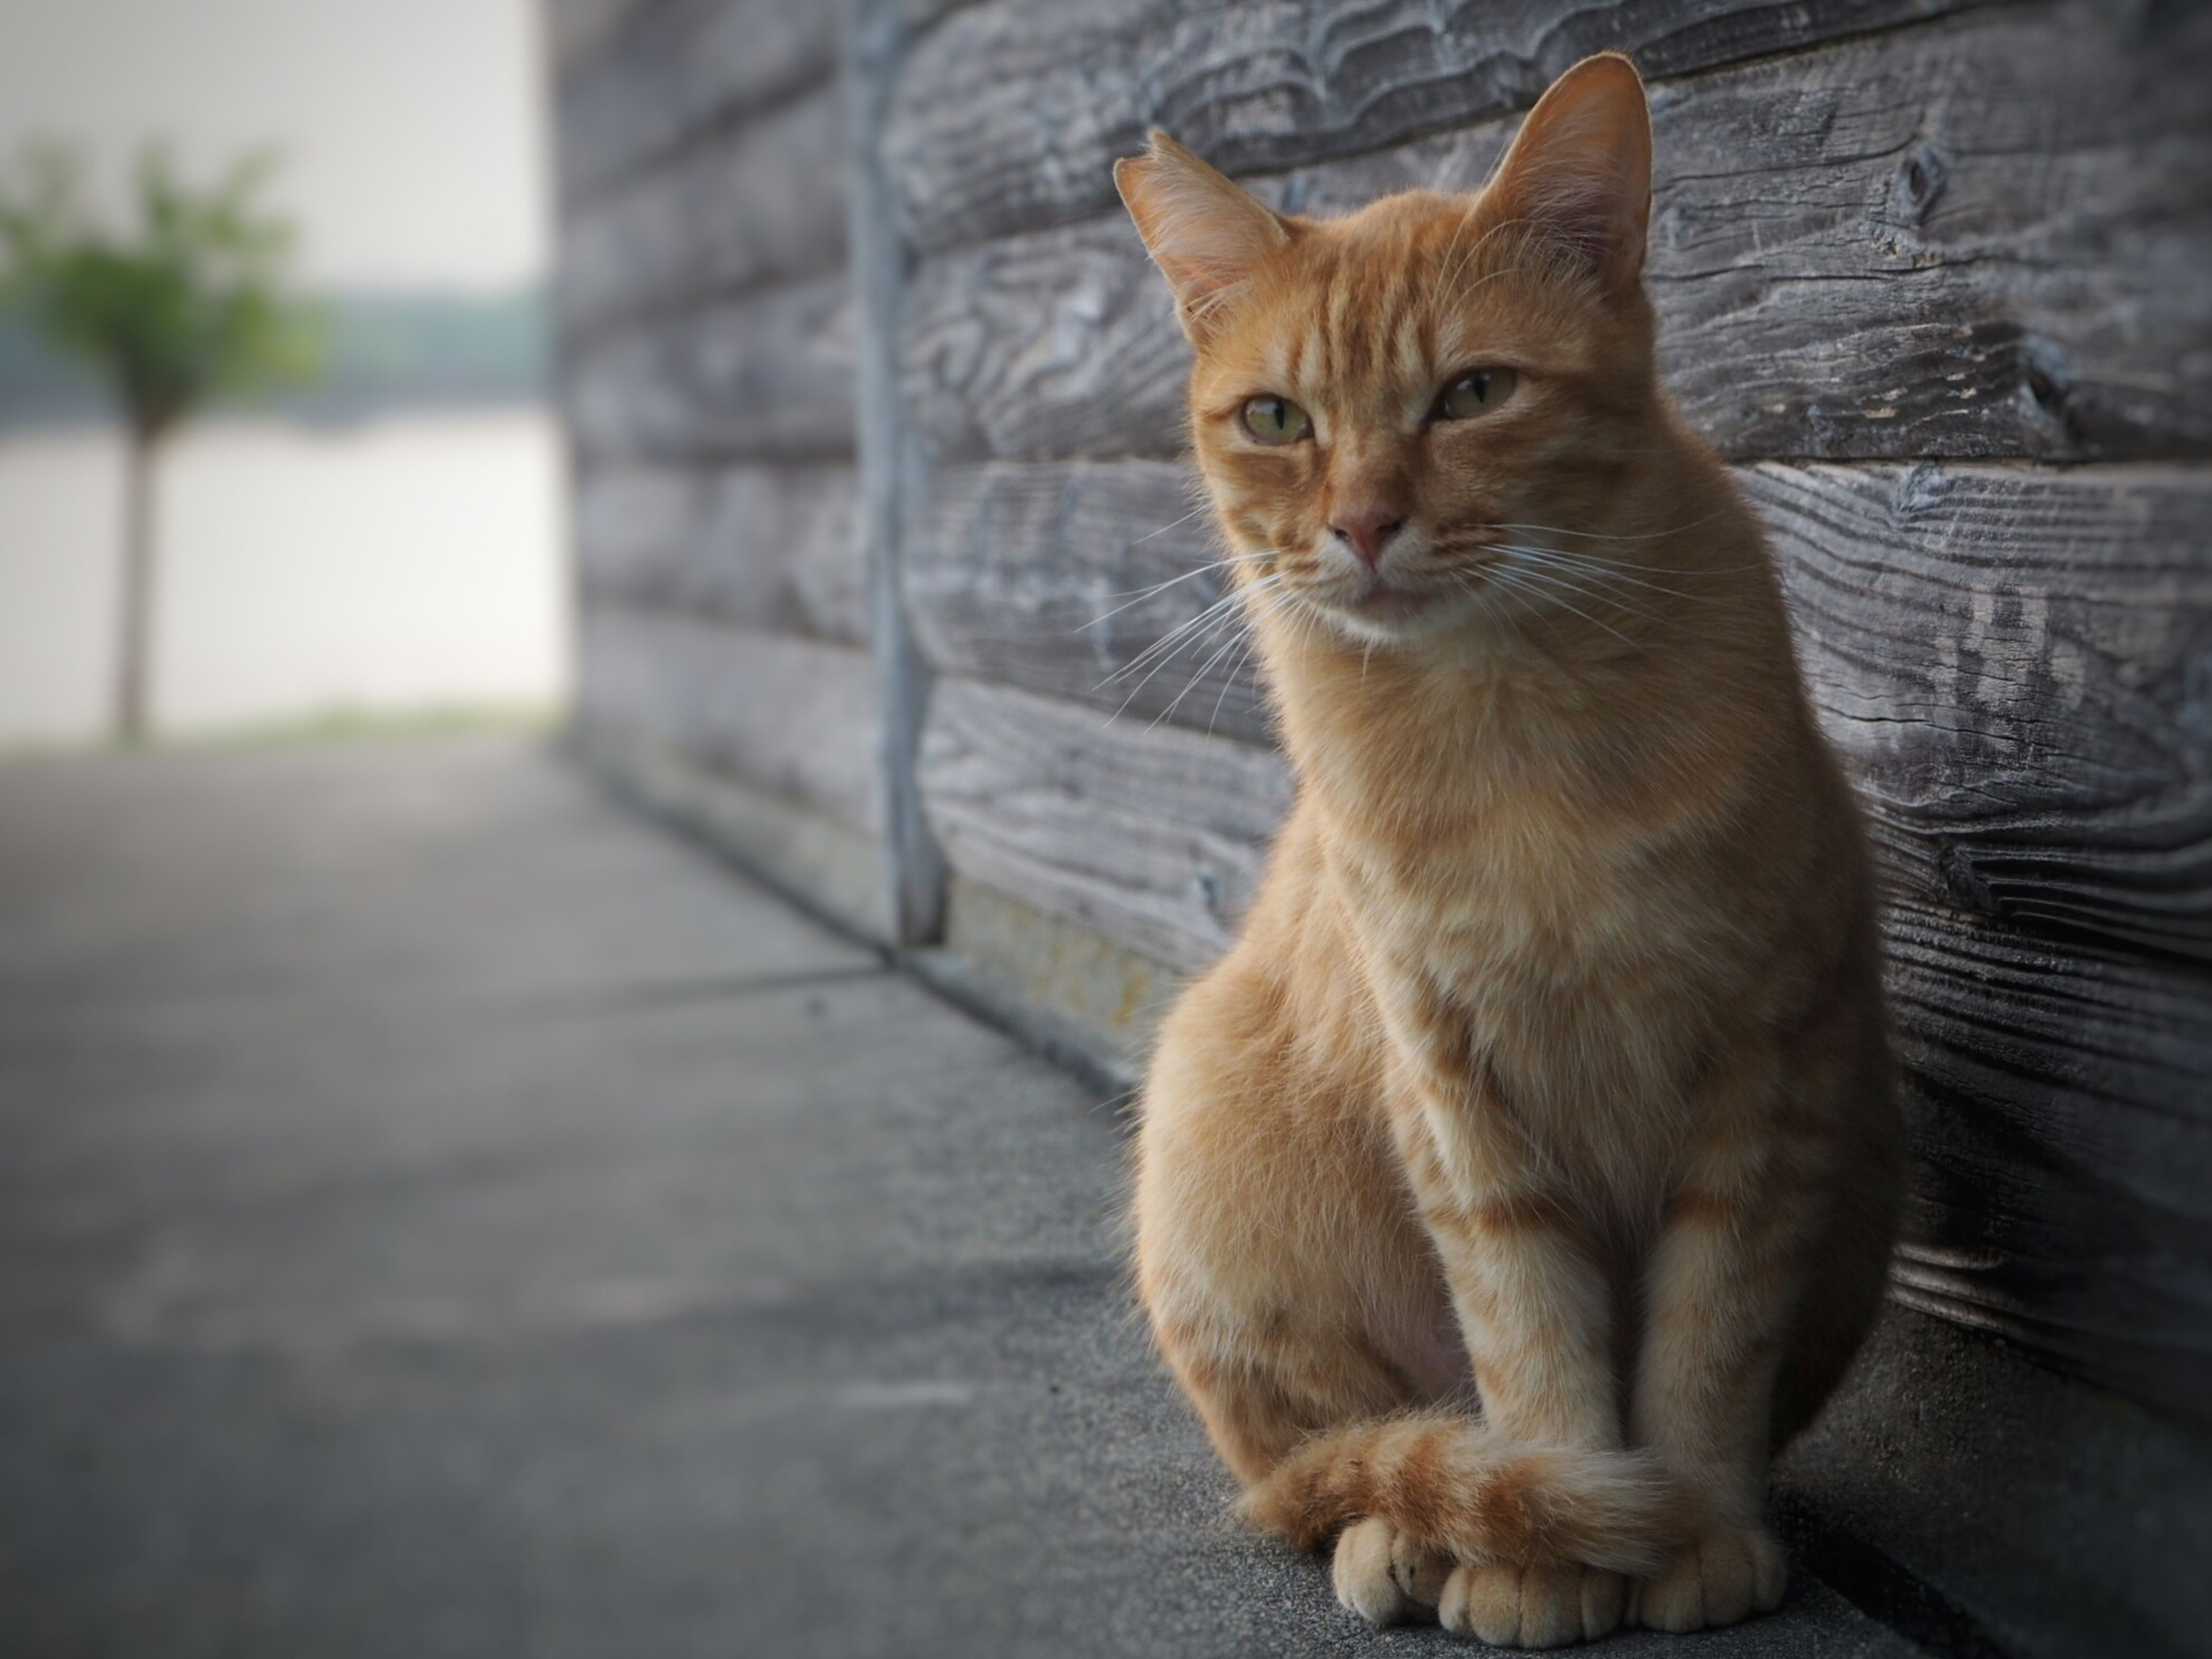 domestic cat, one animal, animal themes, cat, pets, feline, mammal, domestic animals, whisker, sitting, focus on foreground, portrait, looking at camera, close-up, alertness, staring, front view, day, no people